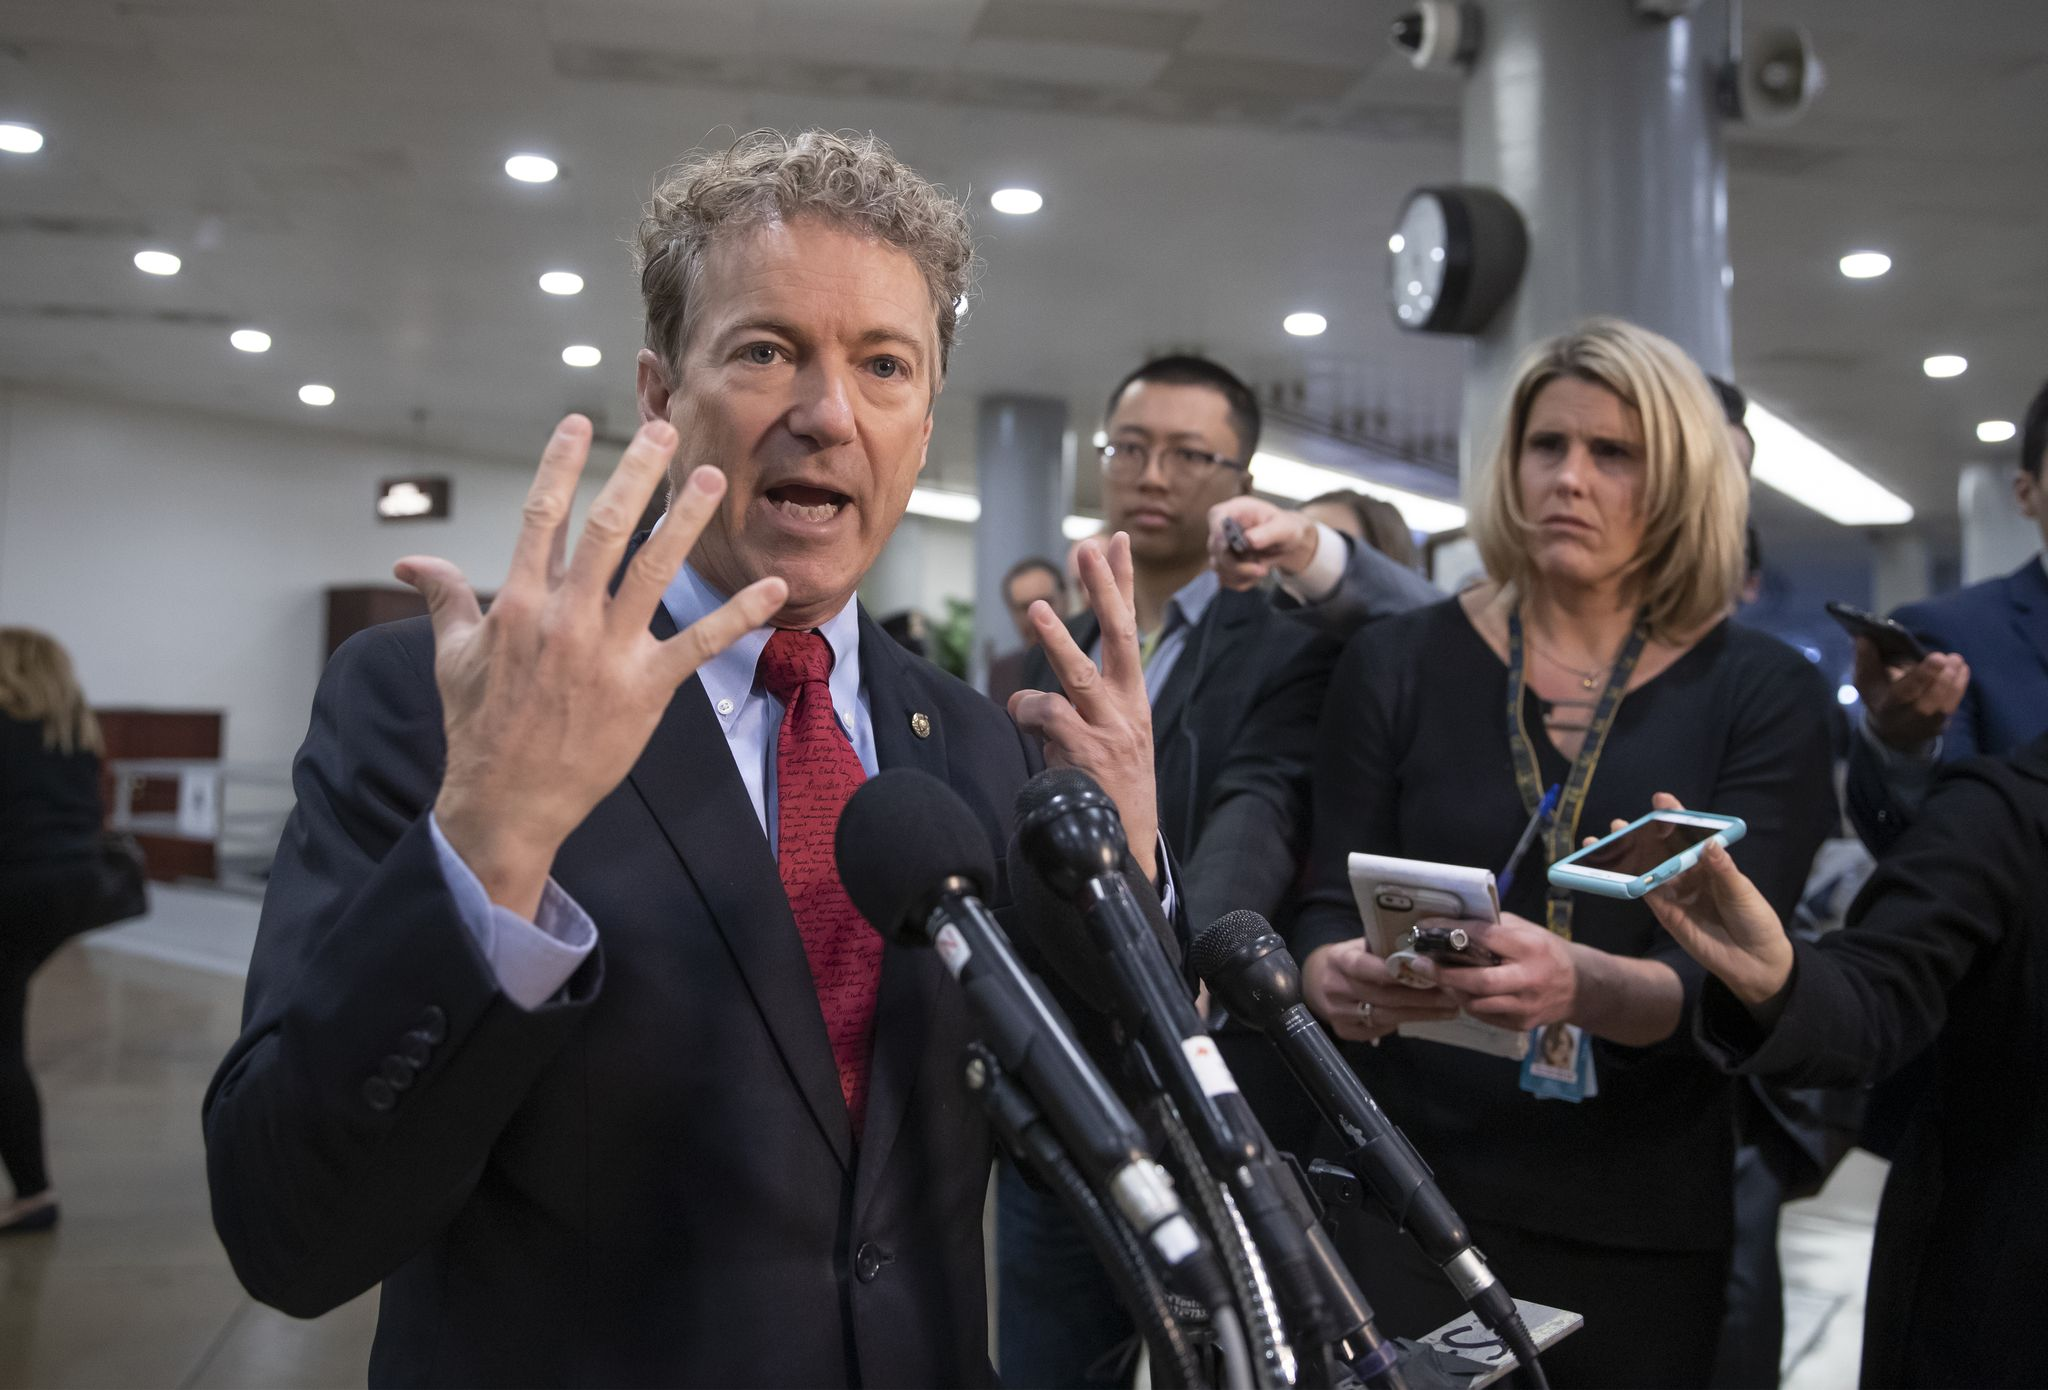 Rand Paul warns political killings will continue in Saudi Arabia if no consequences for Khashoggi